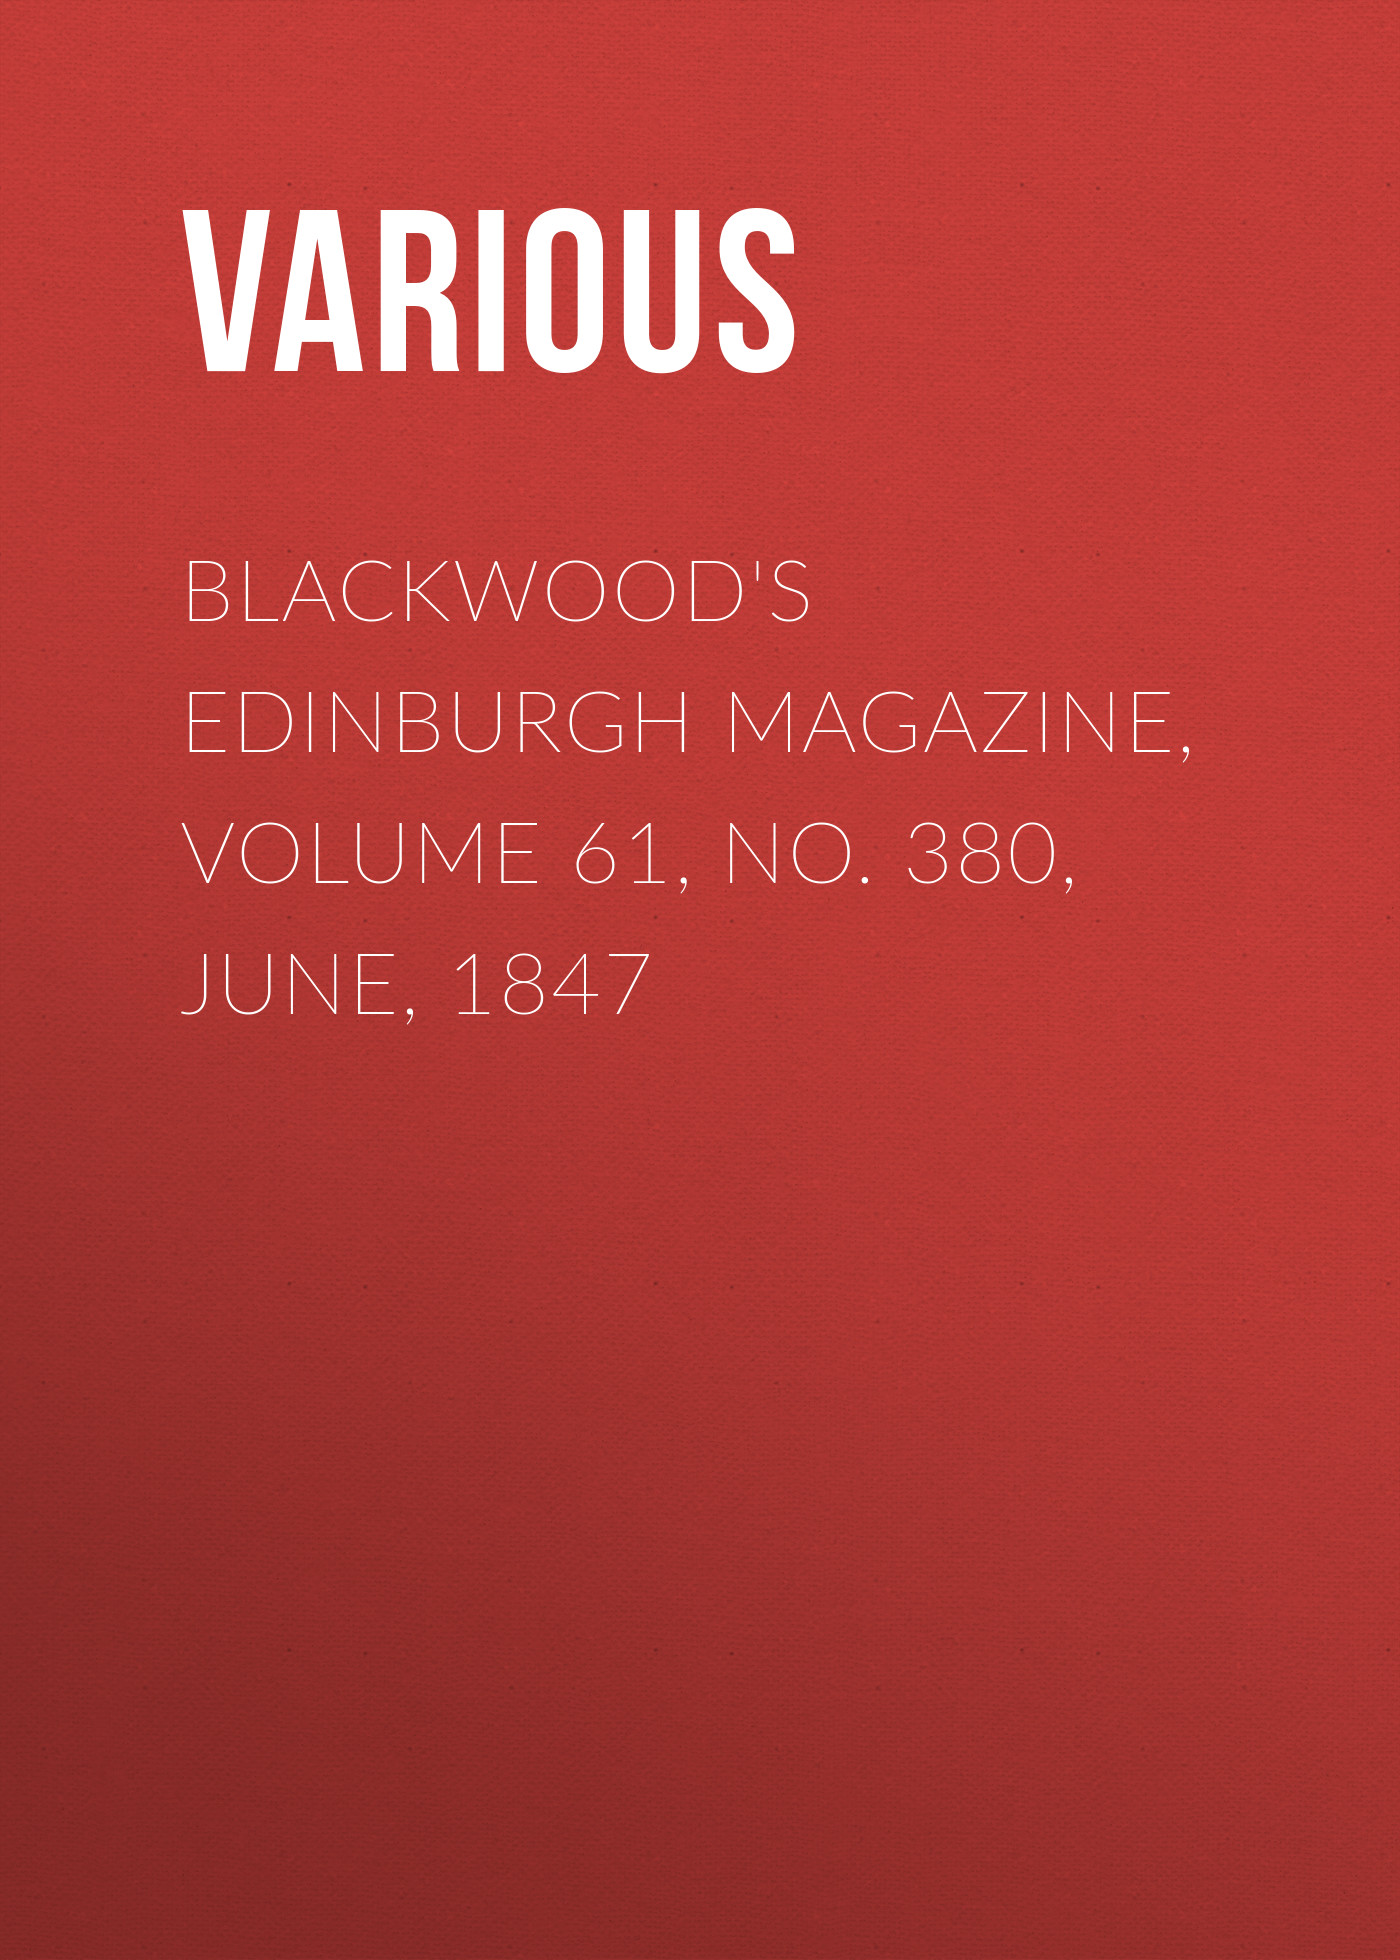 Various Blackwood's Edinburgh Magazine, Volume 61, No. 380, June, 1847